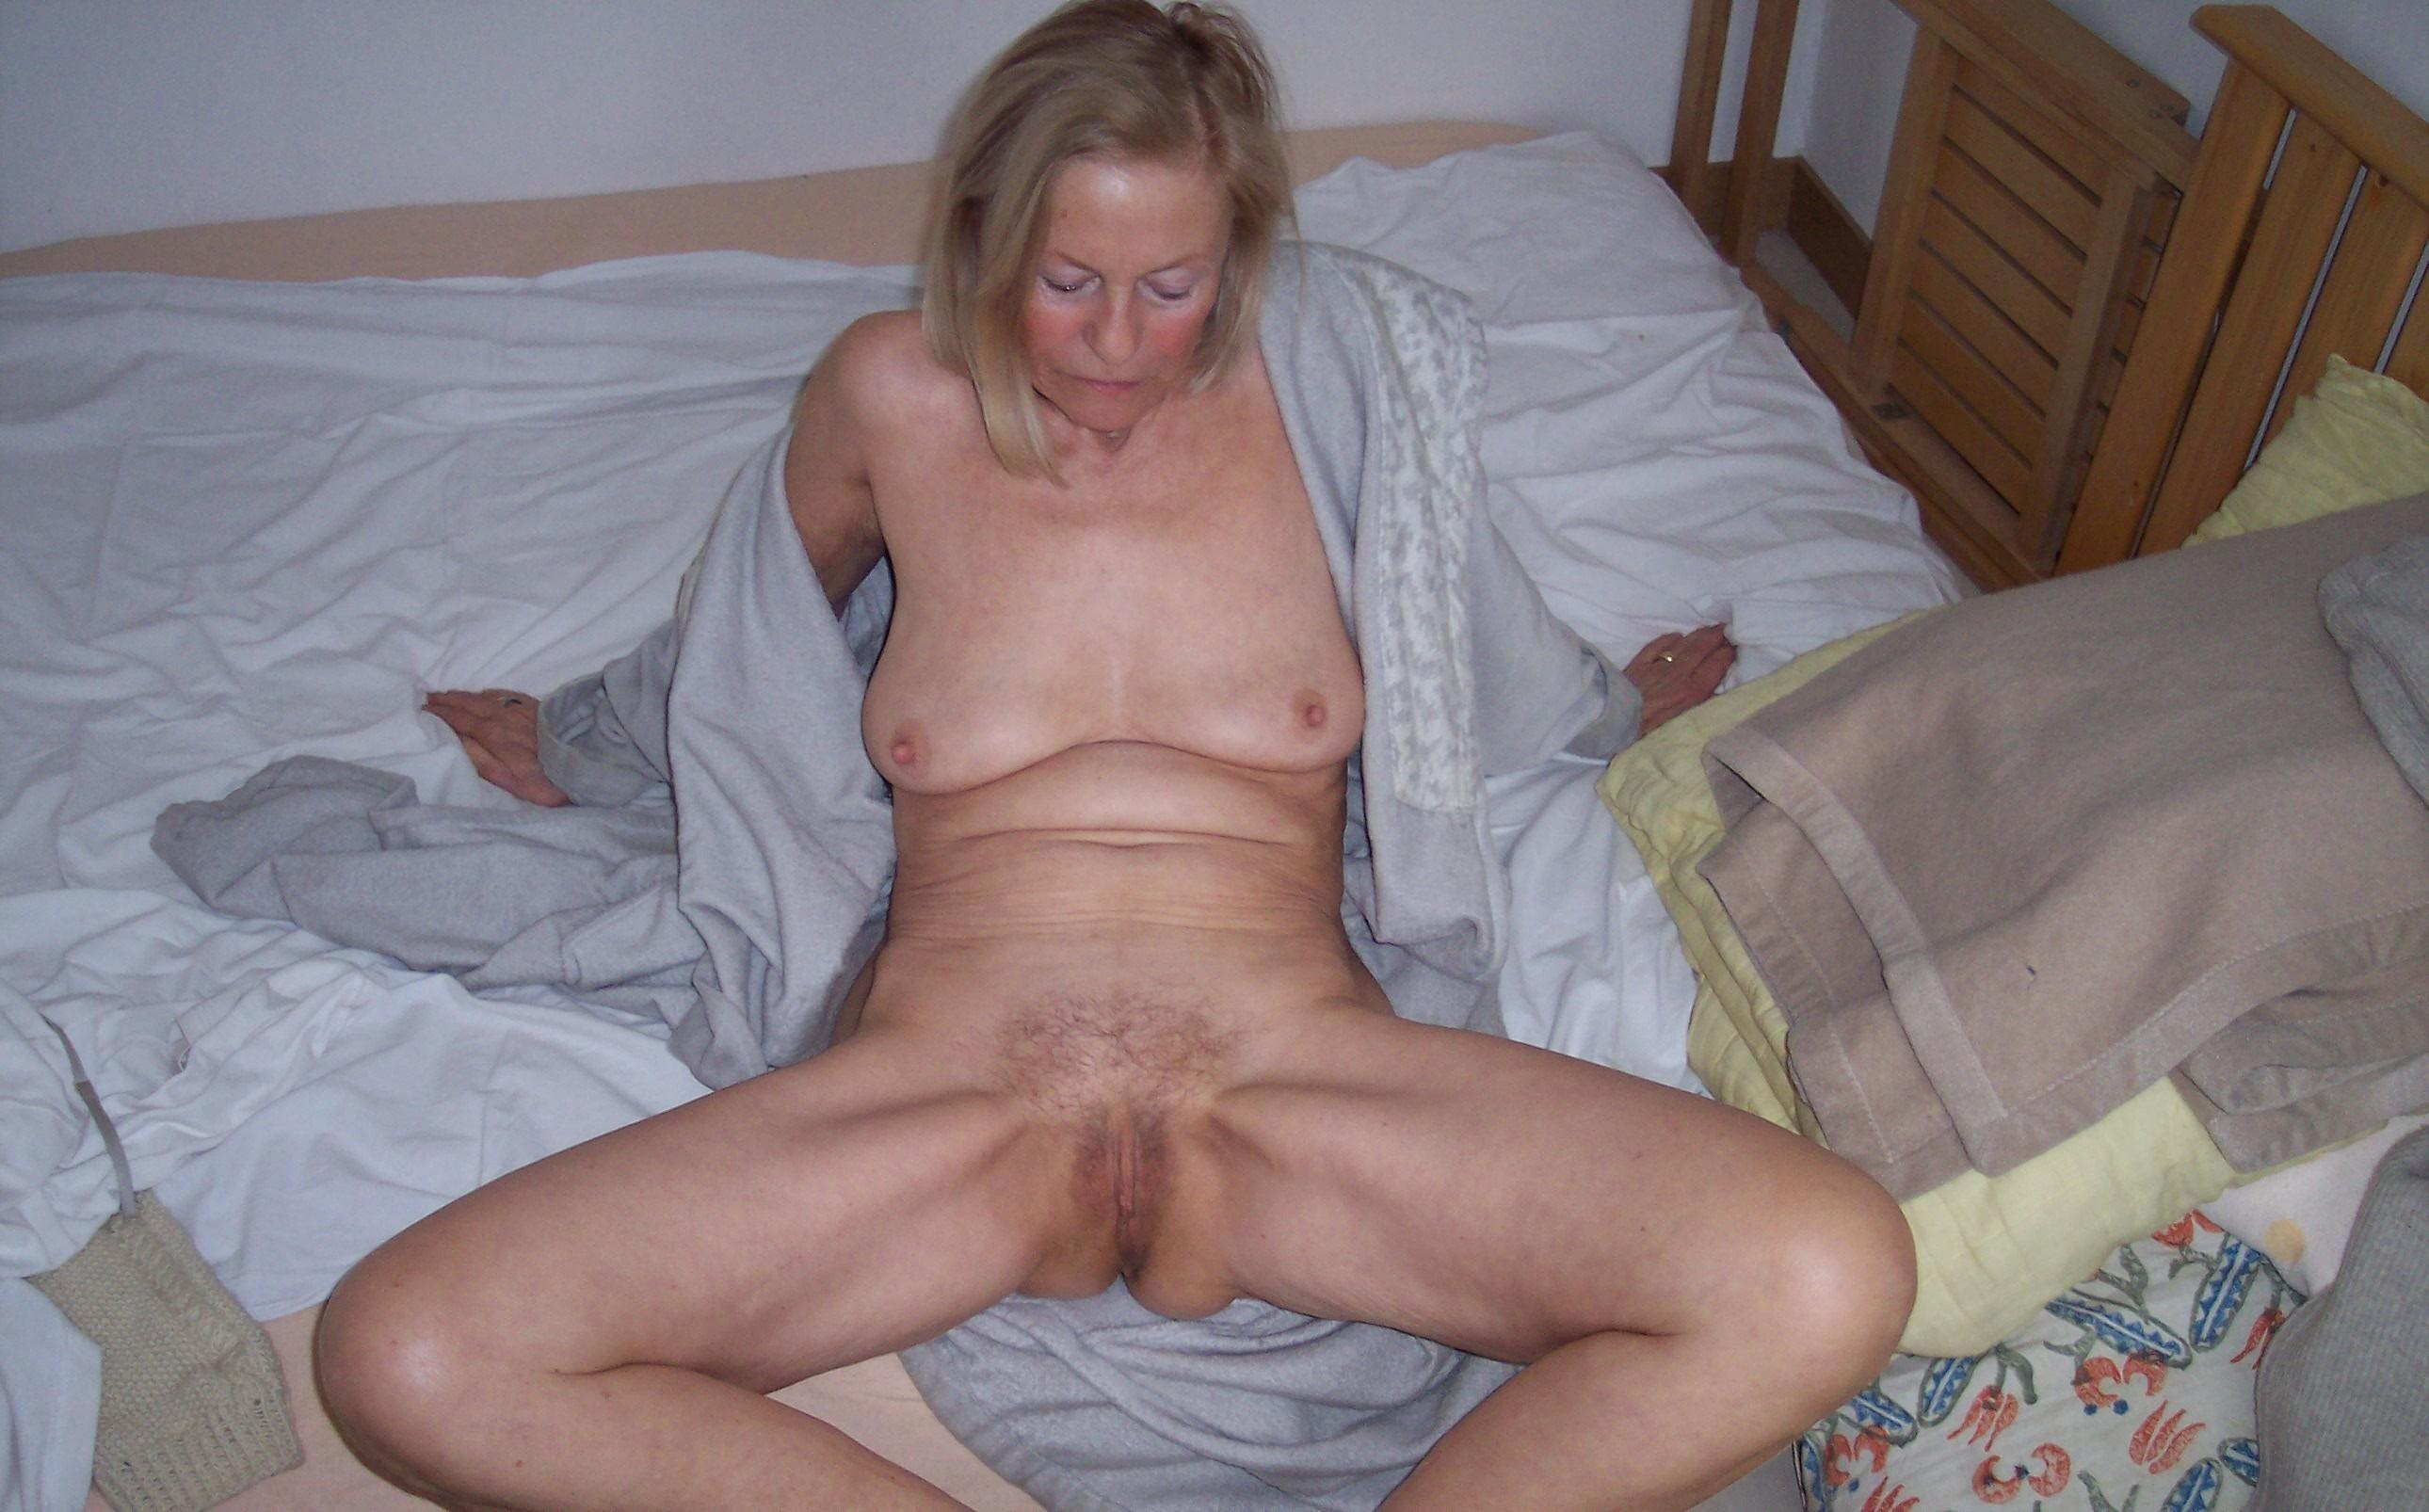 Amateur wife makes hisband cum sleeping